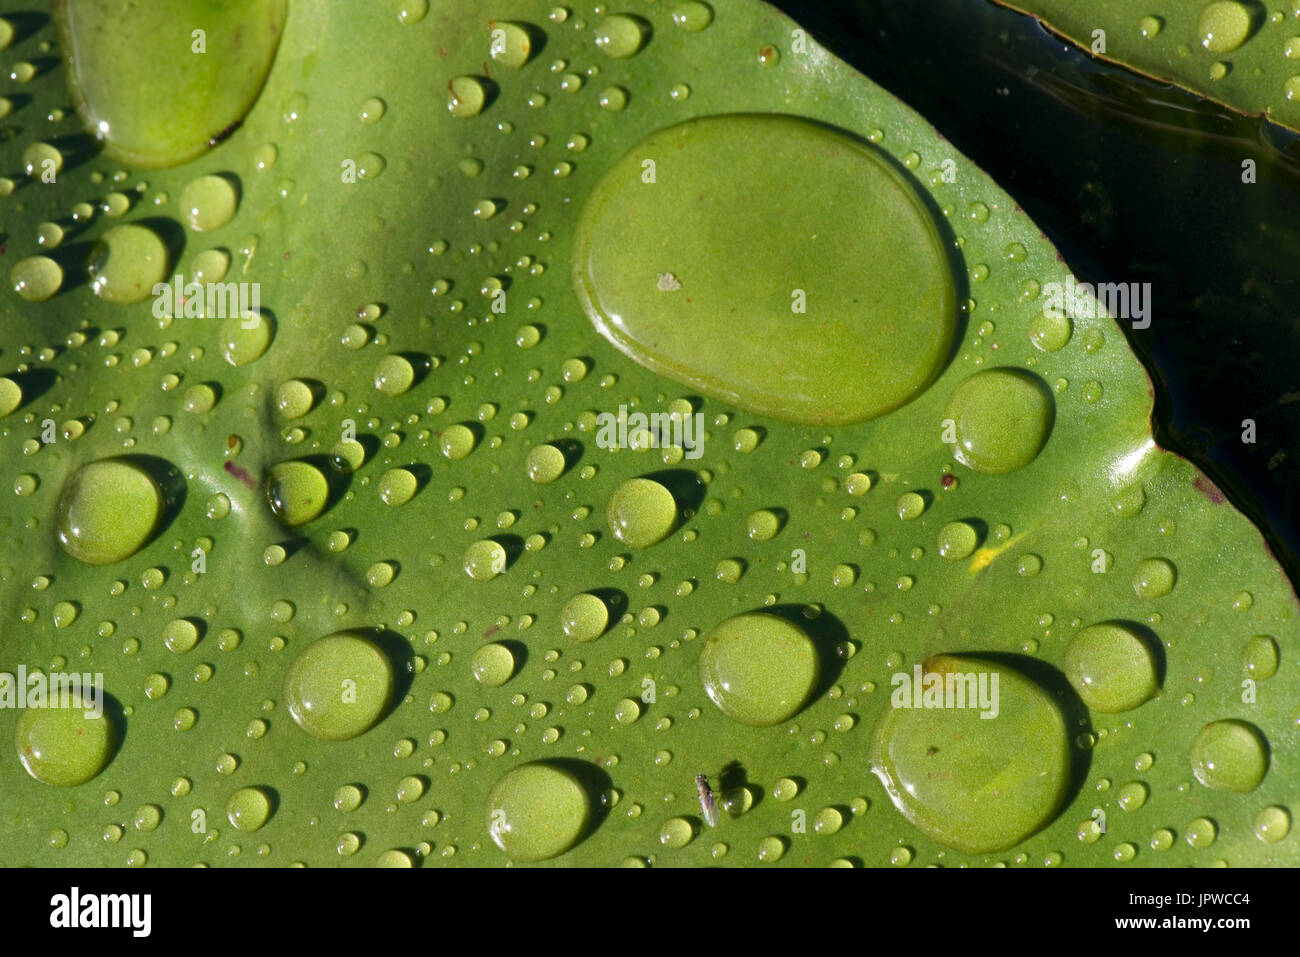 Rain drops round and discreet in bright sunshine on the surface of a water lily pad on a showery summer day, very water repellent. - Stock Image